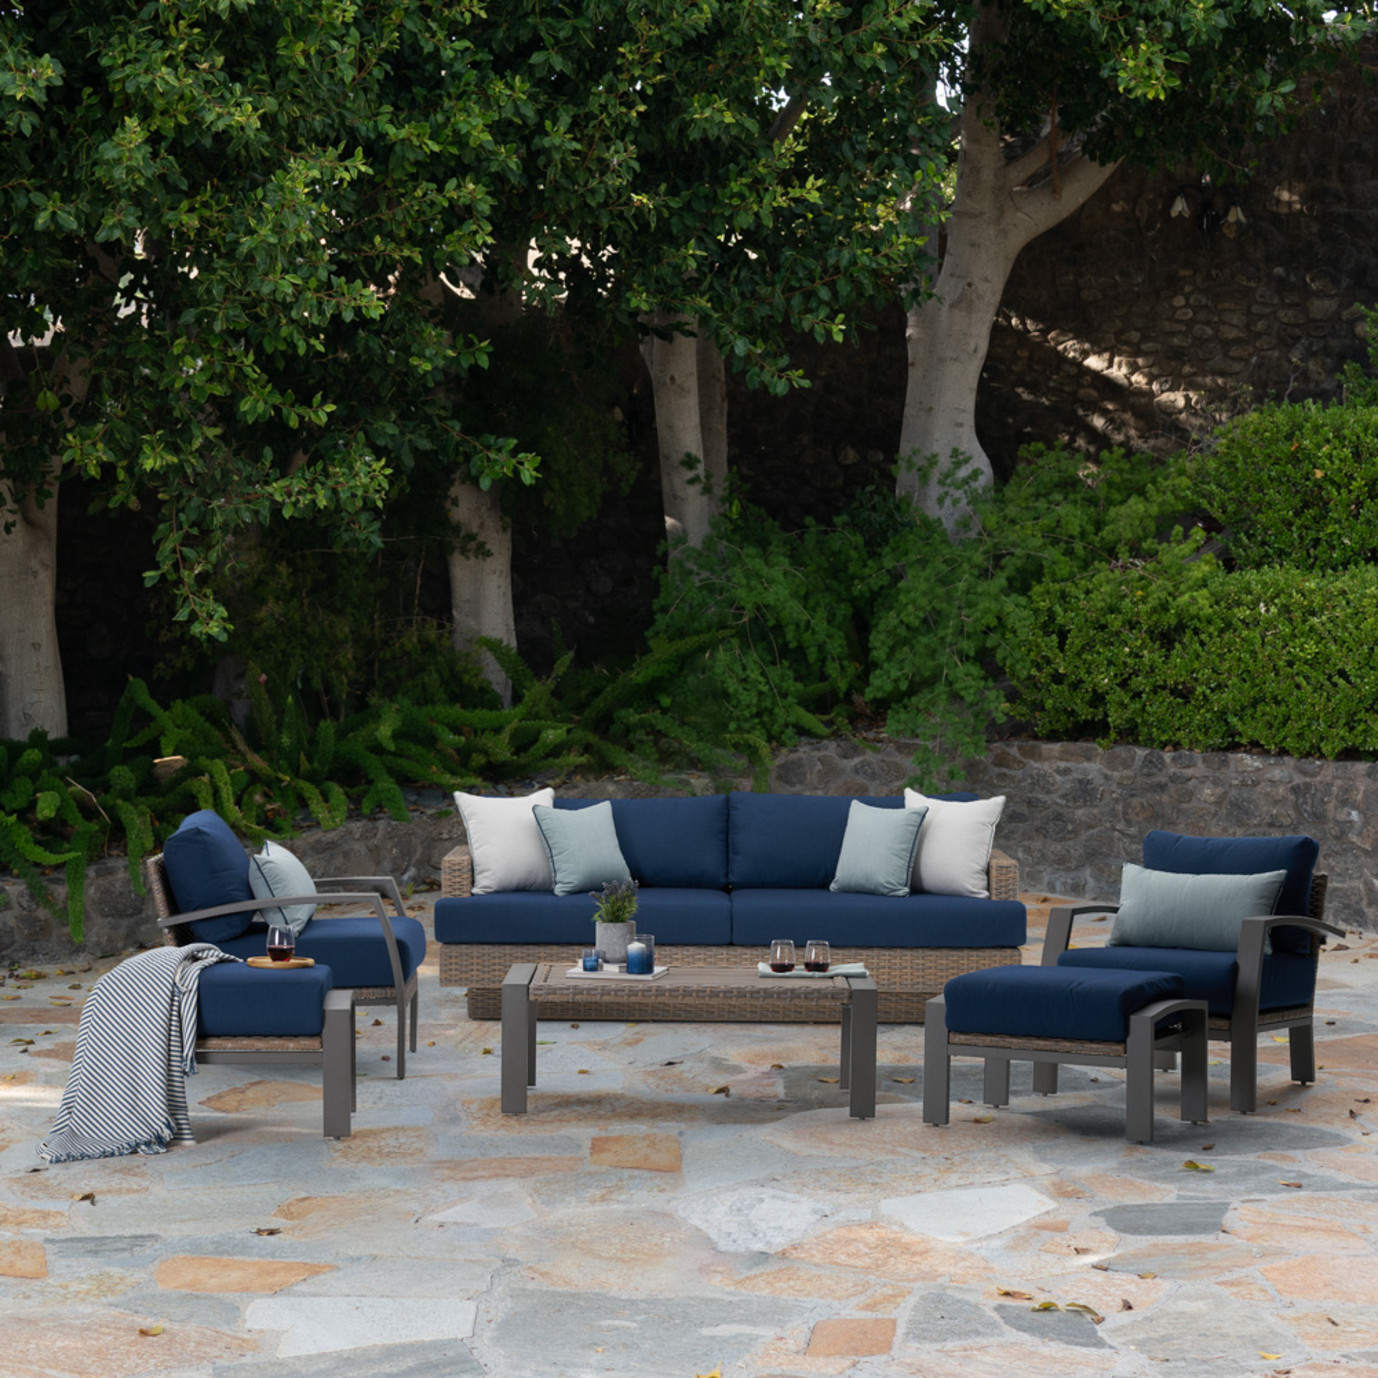 Portofino Repose 6pc Seating Set - Laguna Blue